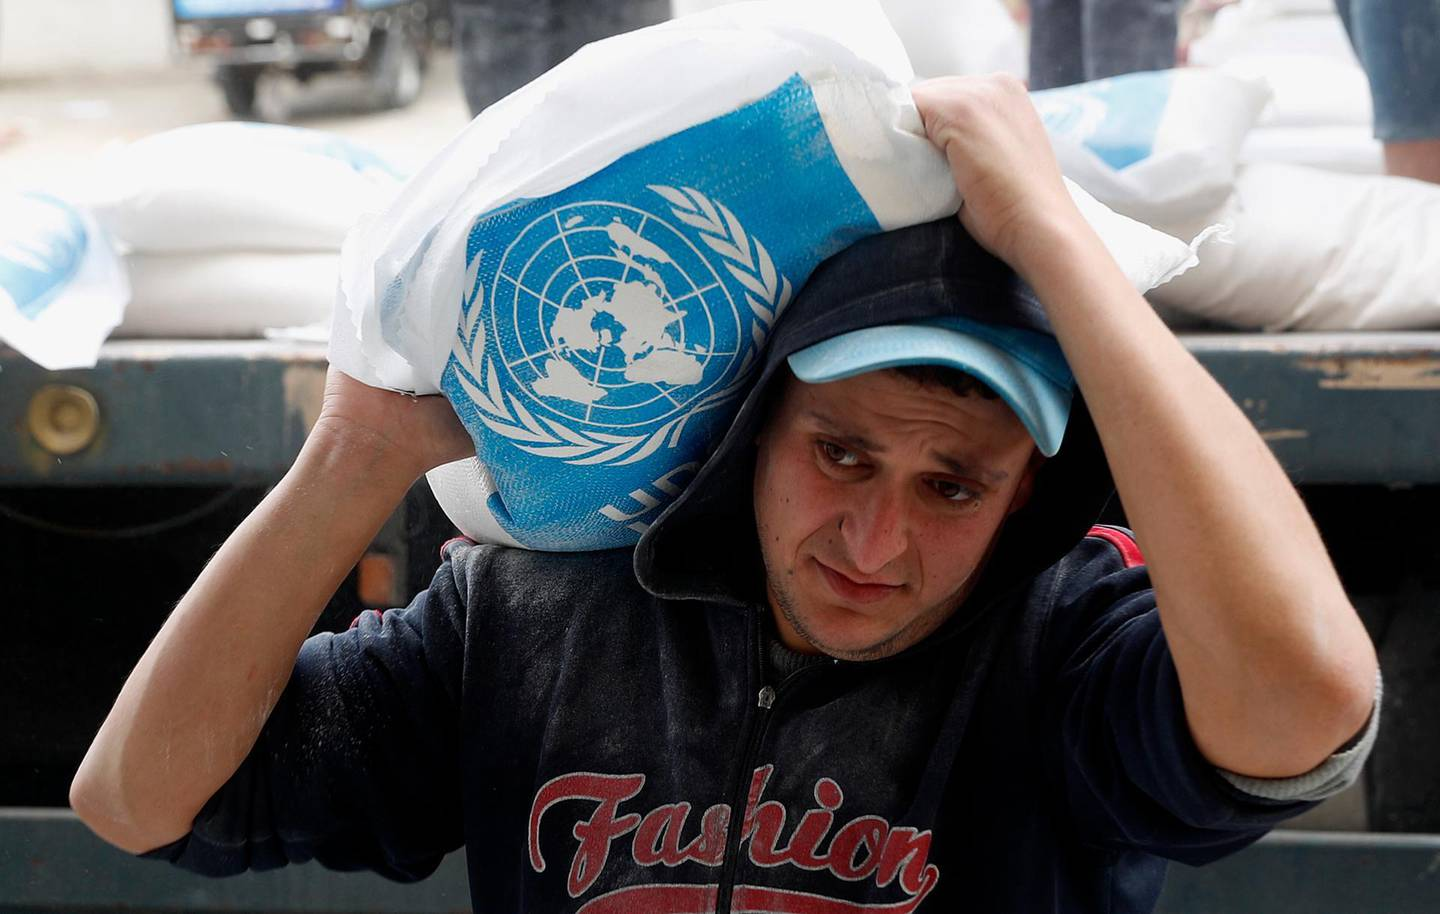 A Palestinian worker carries sacks of flour distributed by the United Nations Relief and Works Agency (UNRWA) for poor refugee families, at the Sheikh Redwan neighborhood of Gaza City, Tuesday, March 31, 2020. The United Nations has resumed food deliveries to thousands of impoverished families in the Gaza Strip after a three-week delay caused by fears of the coronavirus. UNRWA, provides staples like flour, rice, oil and canned foods to roughly half of Gaza's 2 million people. (AP Photo/Adel Hana)